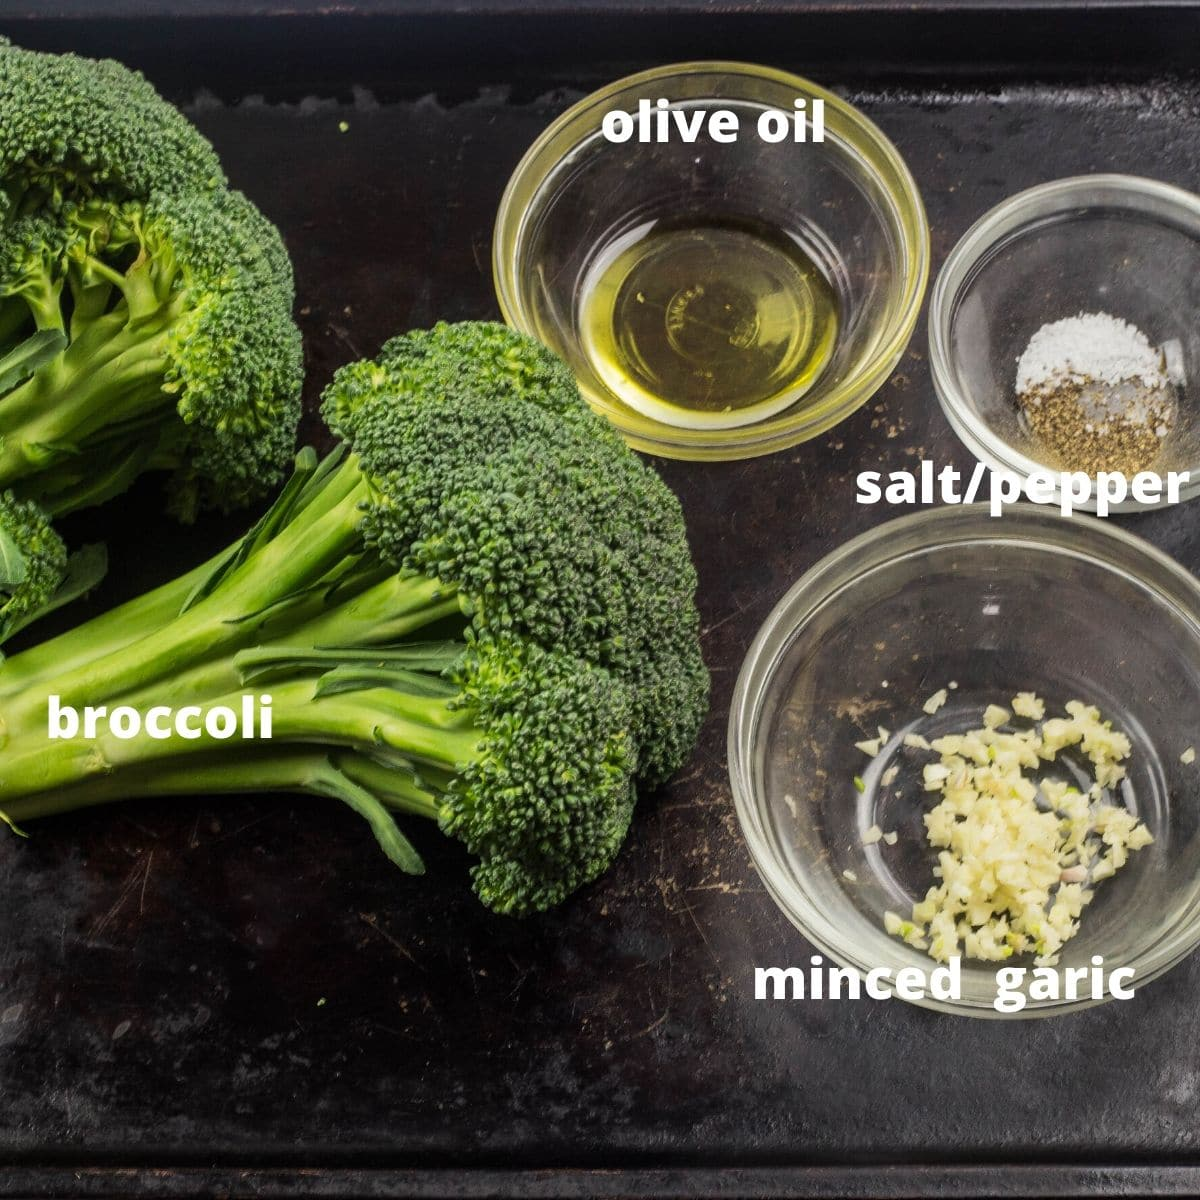 ingredient pictorial of broccoli, olive oil, and garlic.